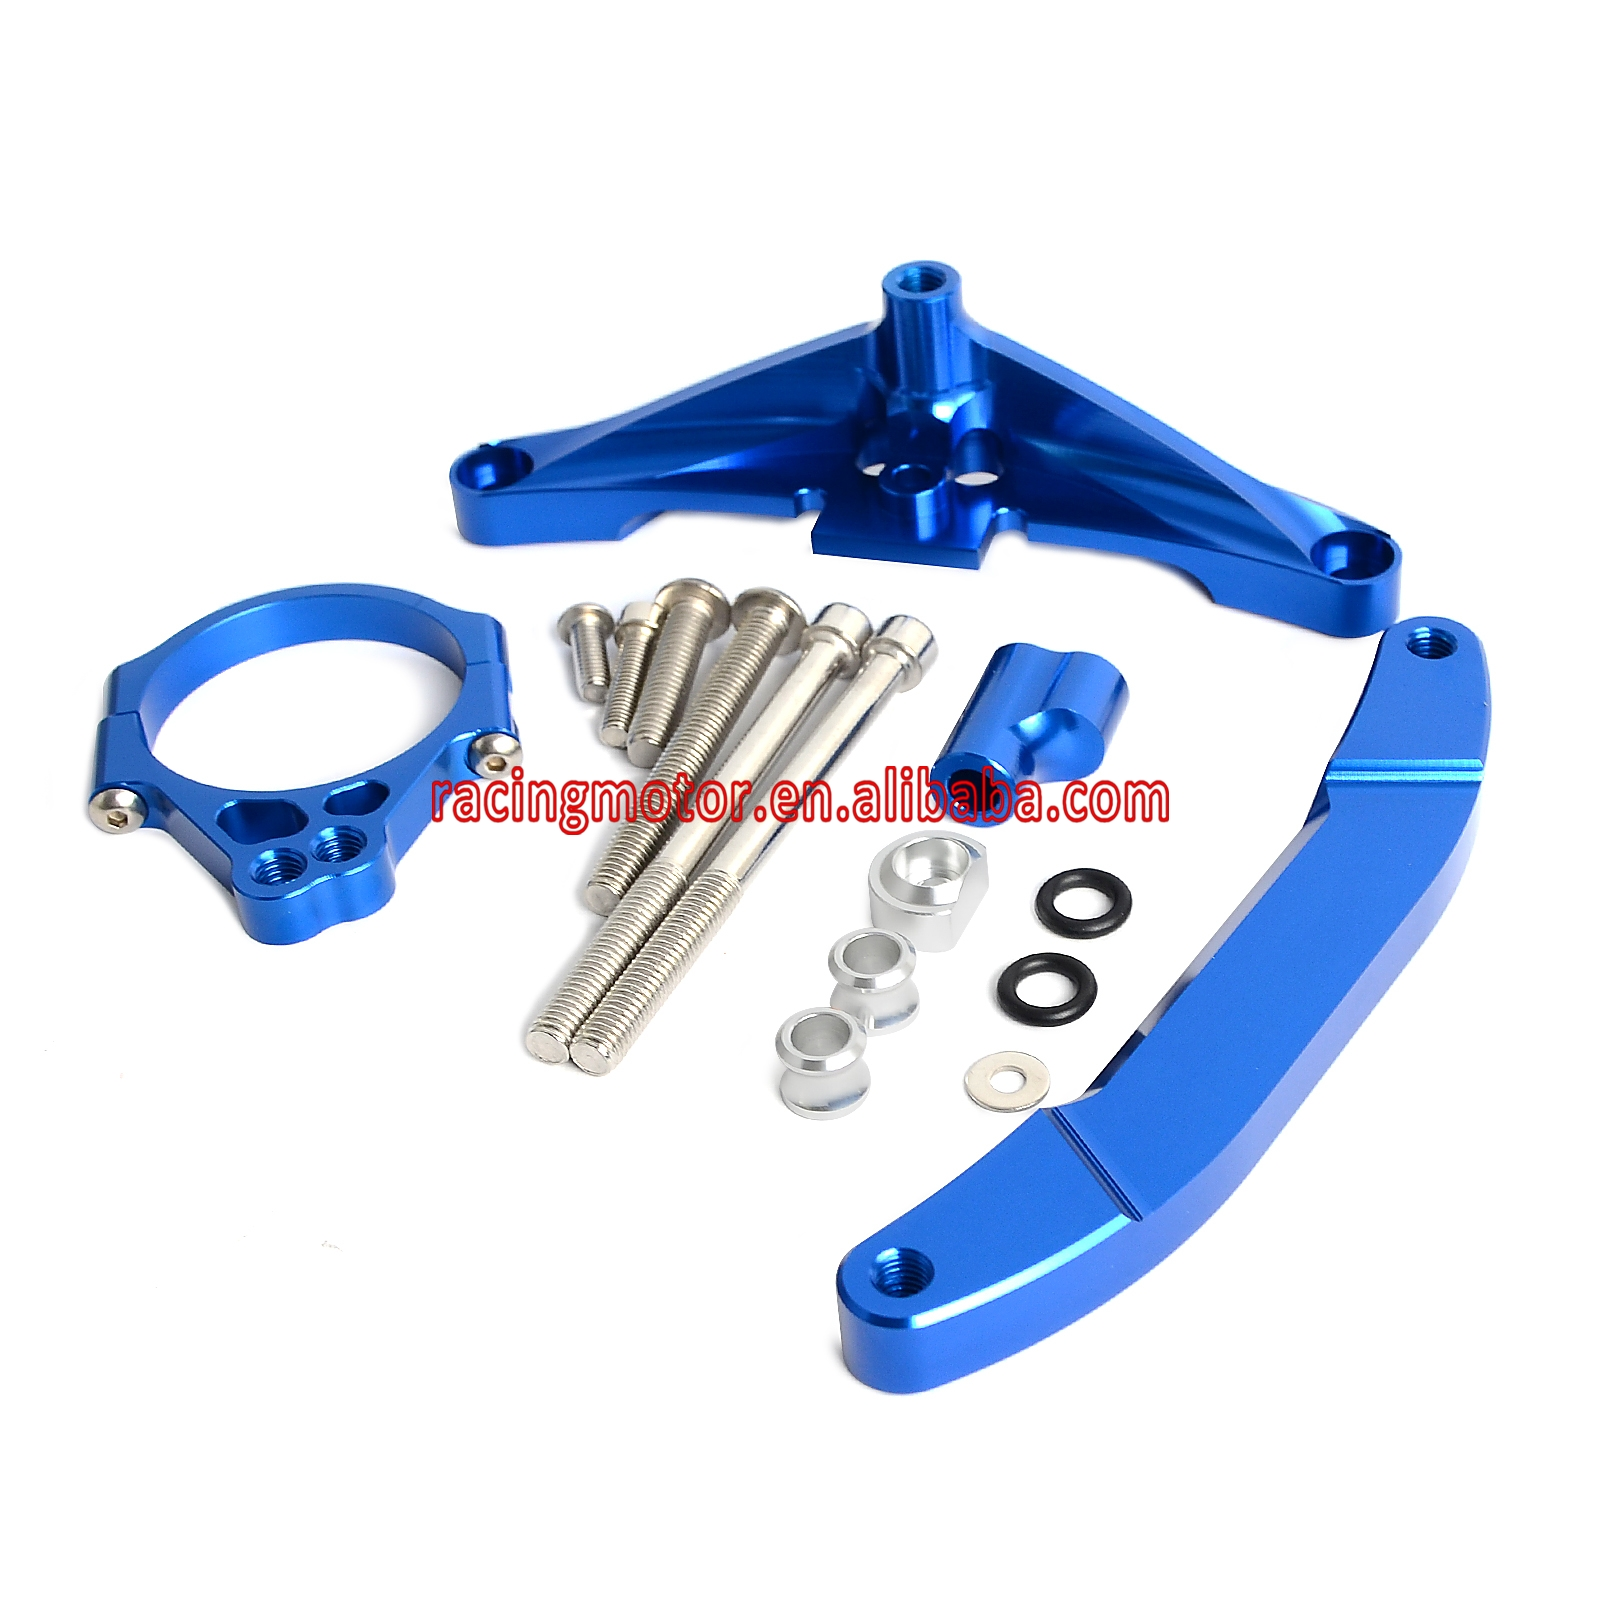 Motorcycle Mounting Bracket Kit for Yamaha  FZ1 Fazer 2006 - 2015 2007 2008 2009 2010 2011 2012 2013 2014<br>